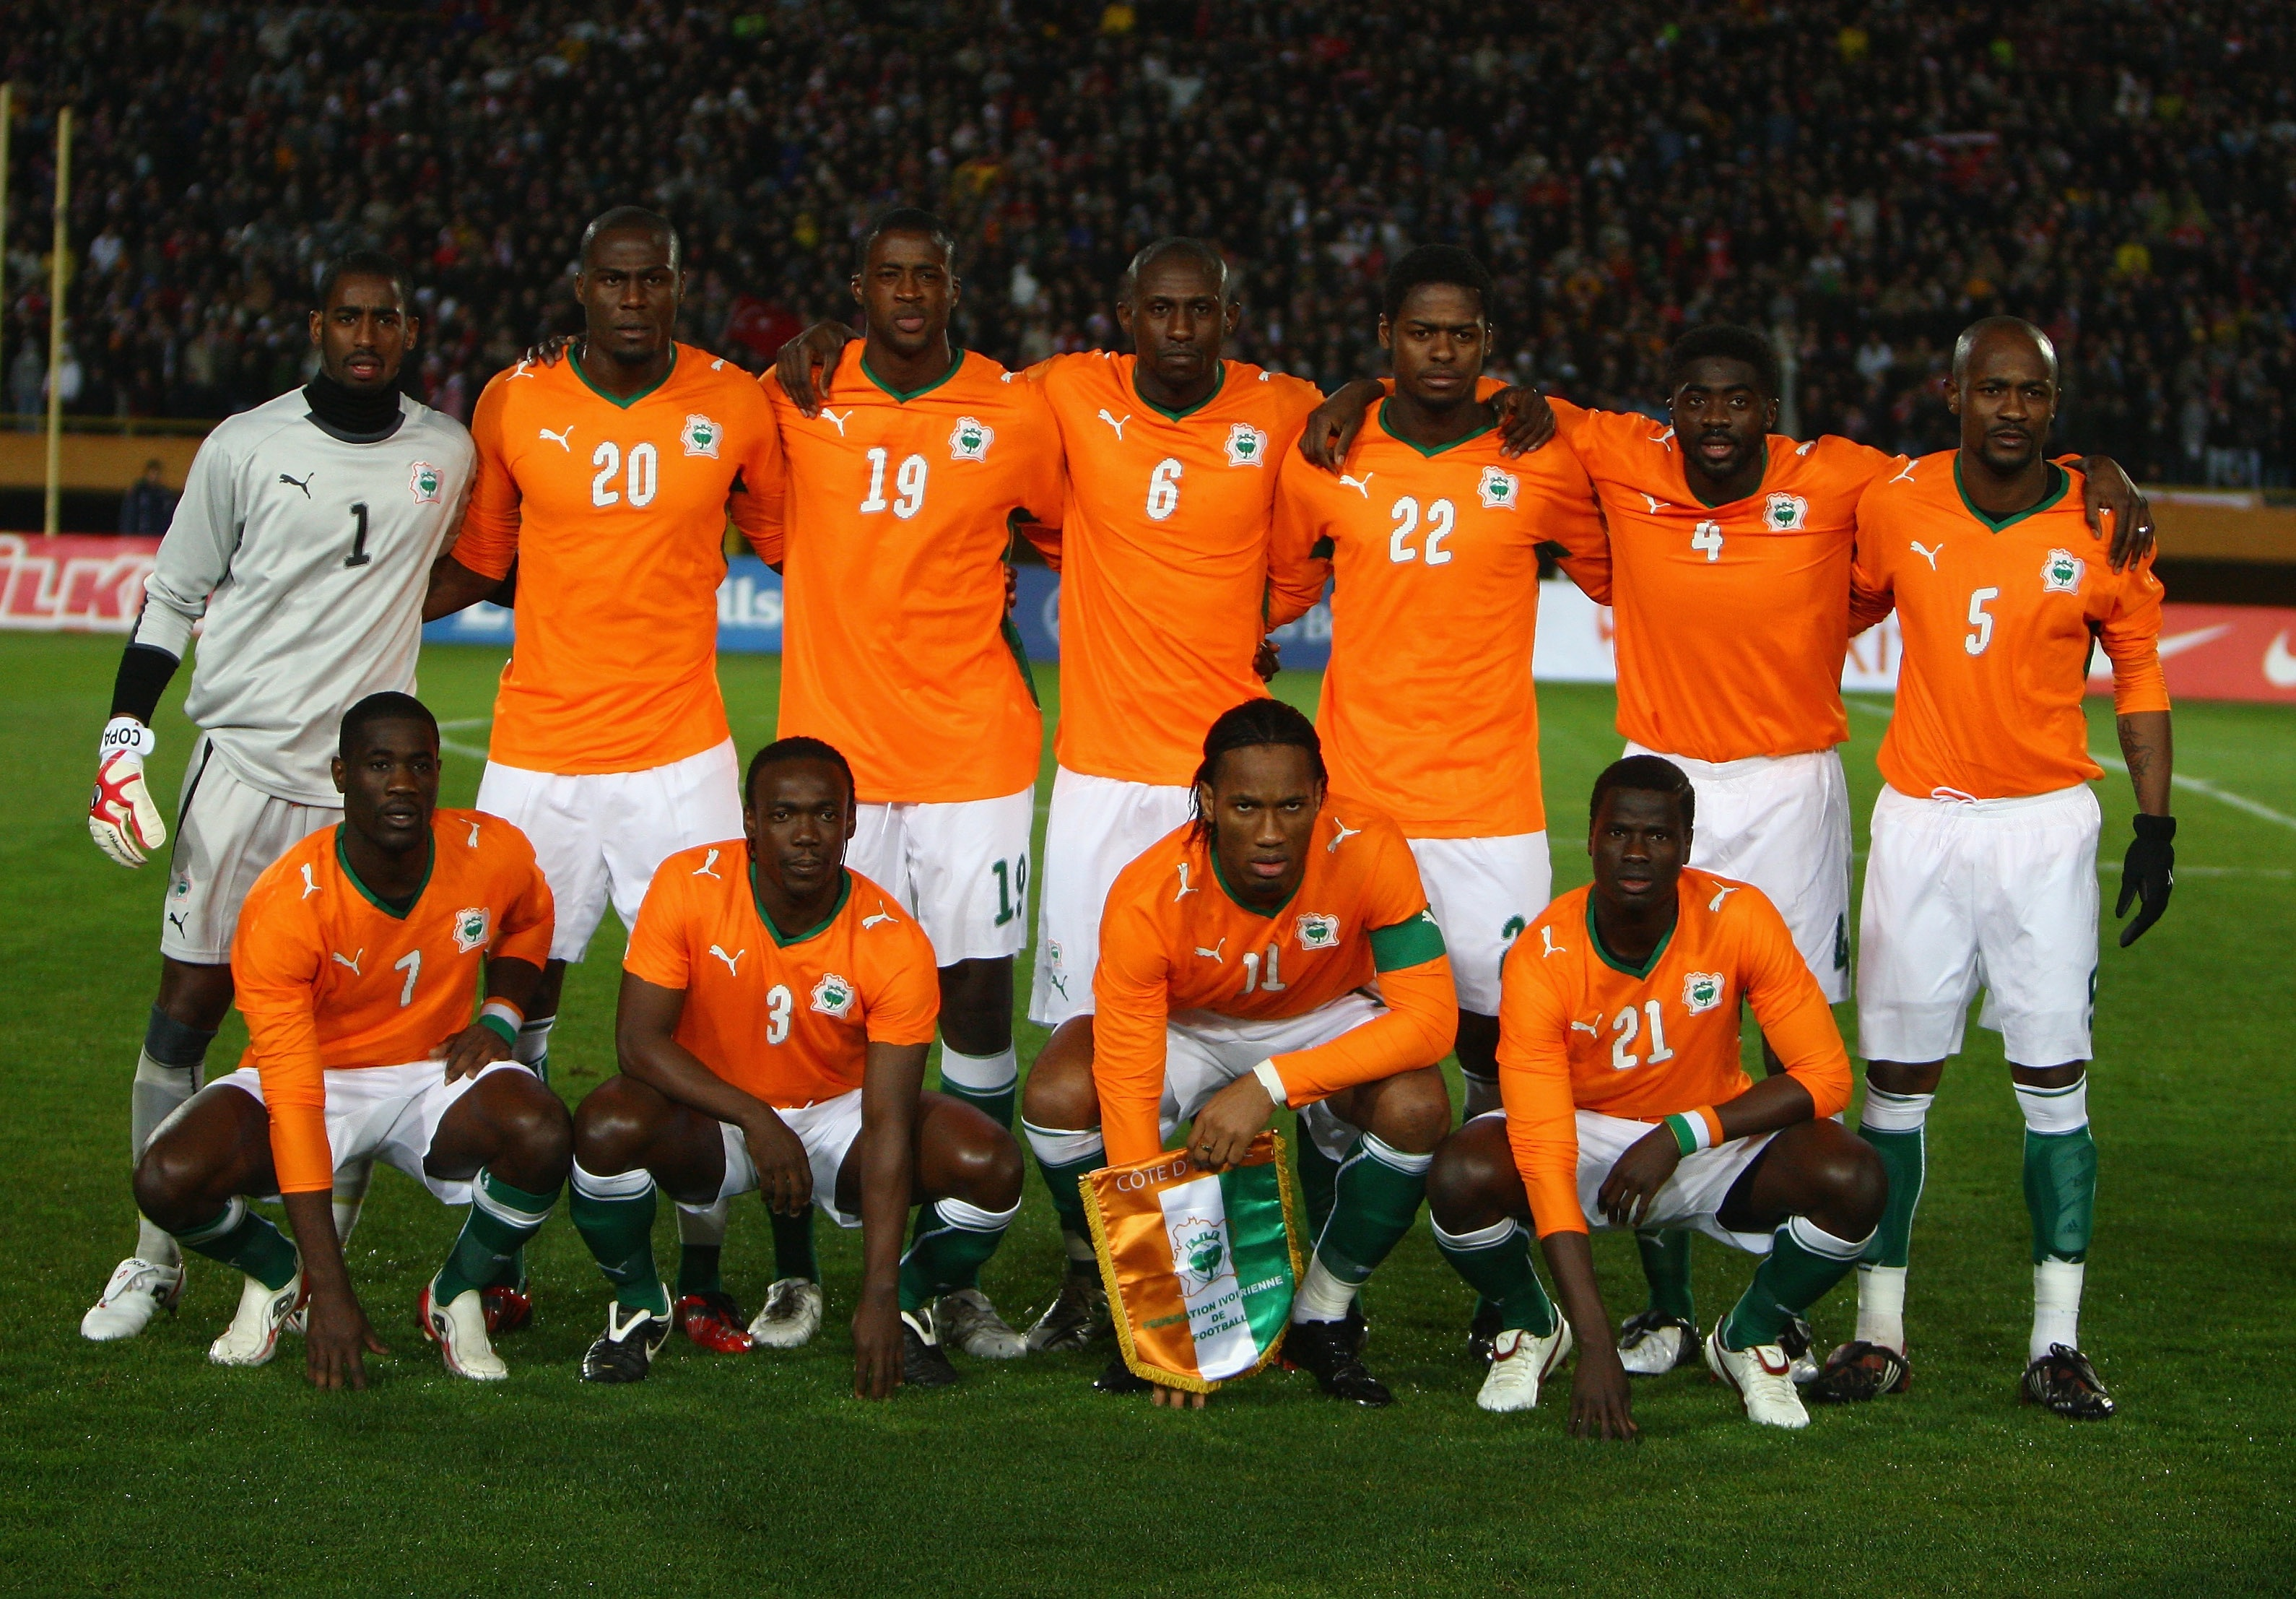 Cote d'Ivoire 2014 World Cup